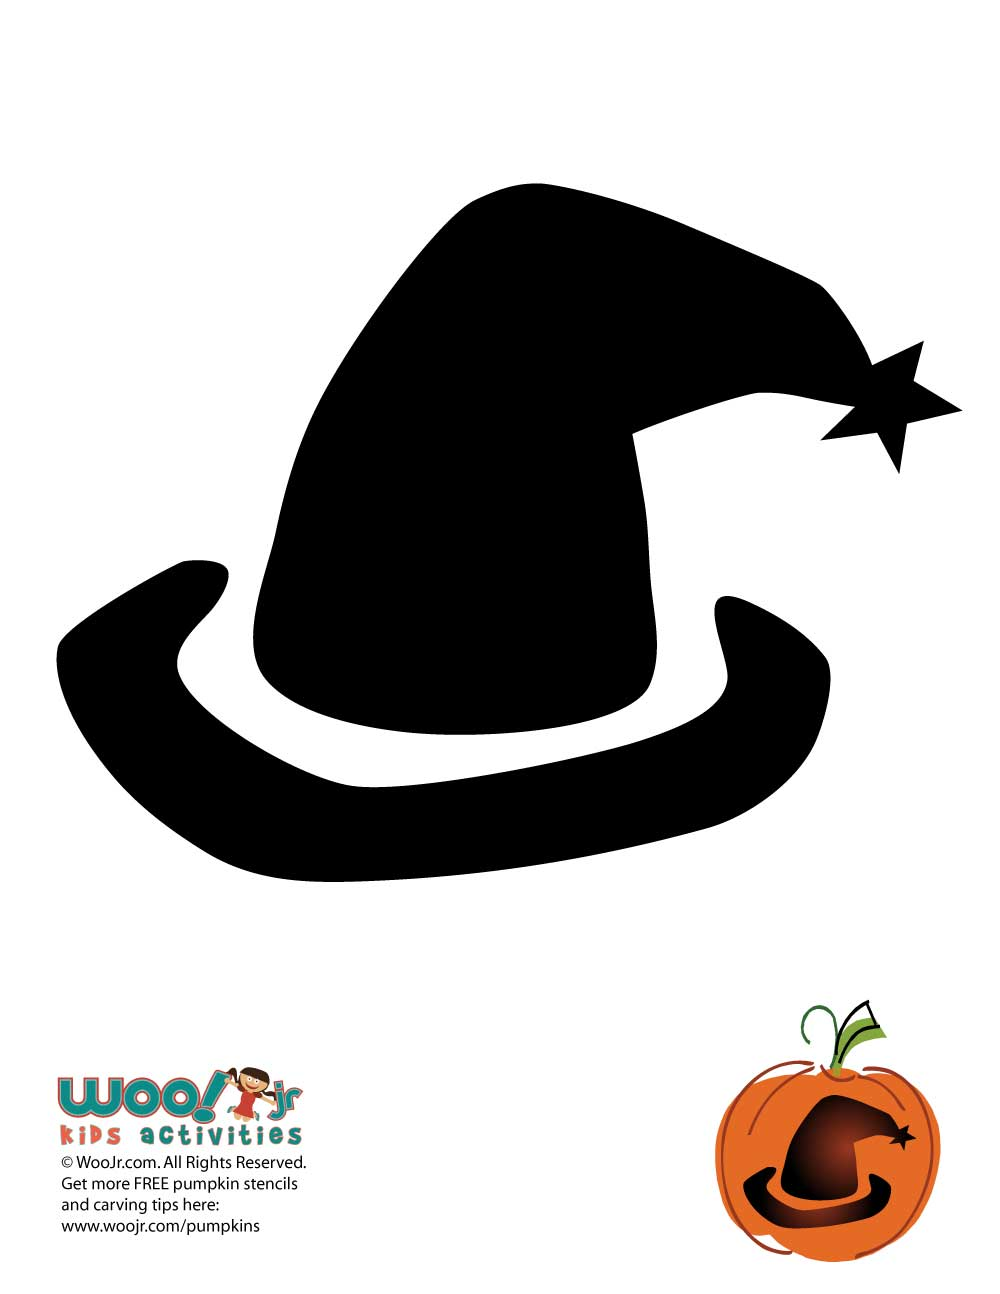 photo about Witches Hat Template Printable named Very simple Witchs Hat Pumpkin Template Woo! Jr. Youngsters Actions